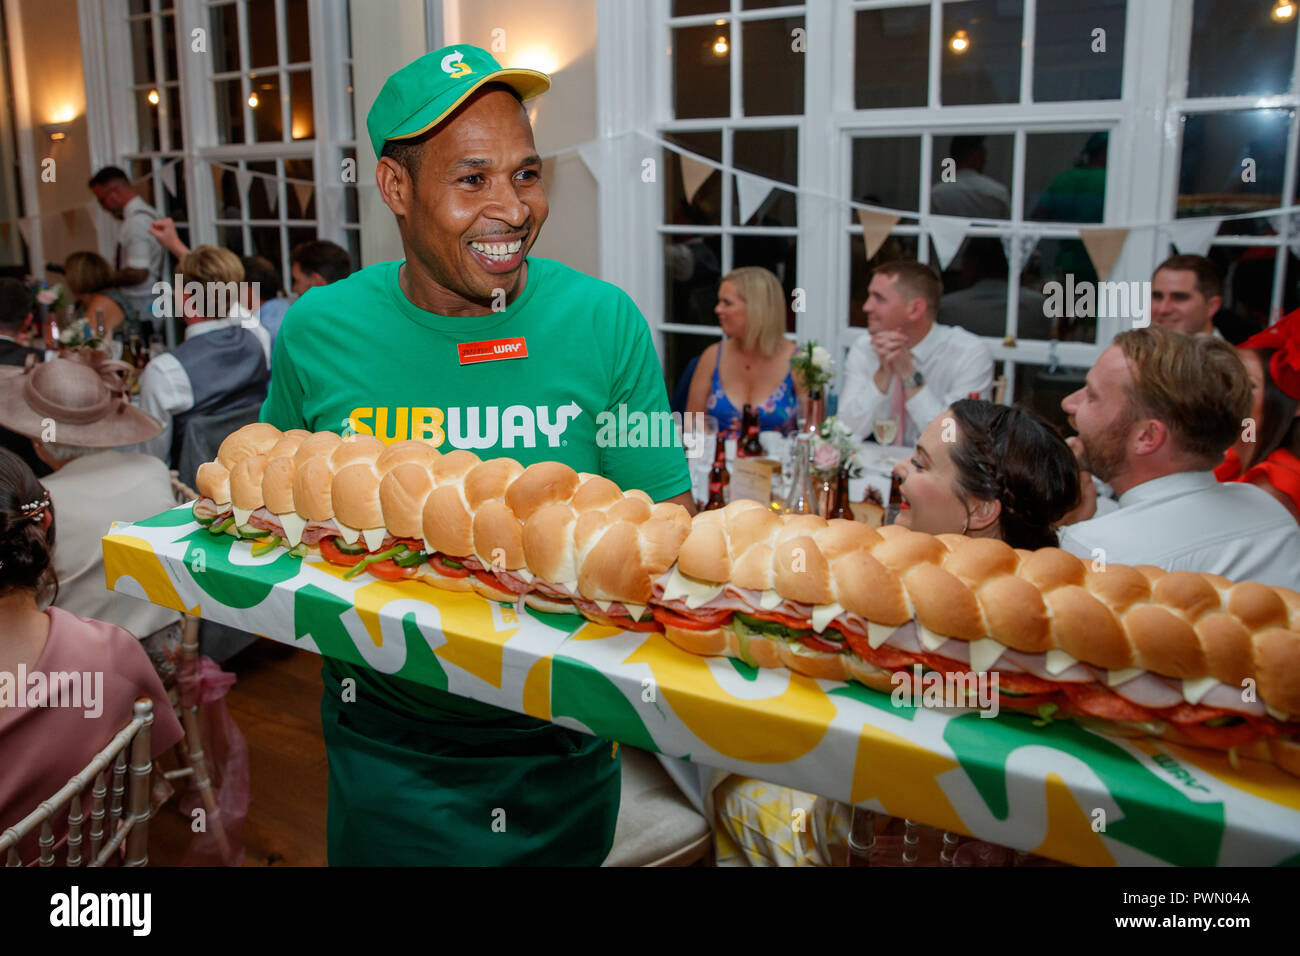 7fa6b2c9b460c Subway Sandwich Artists Justin Pringle and Yasoda Jayaweera deliver a BMT  Giant Sub to the wedding ...